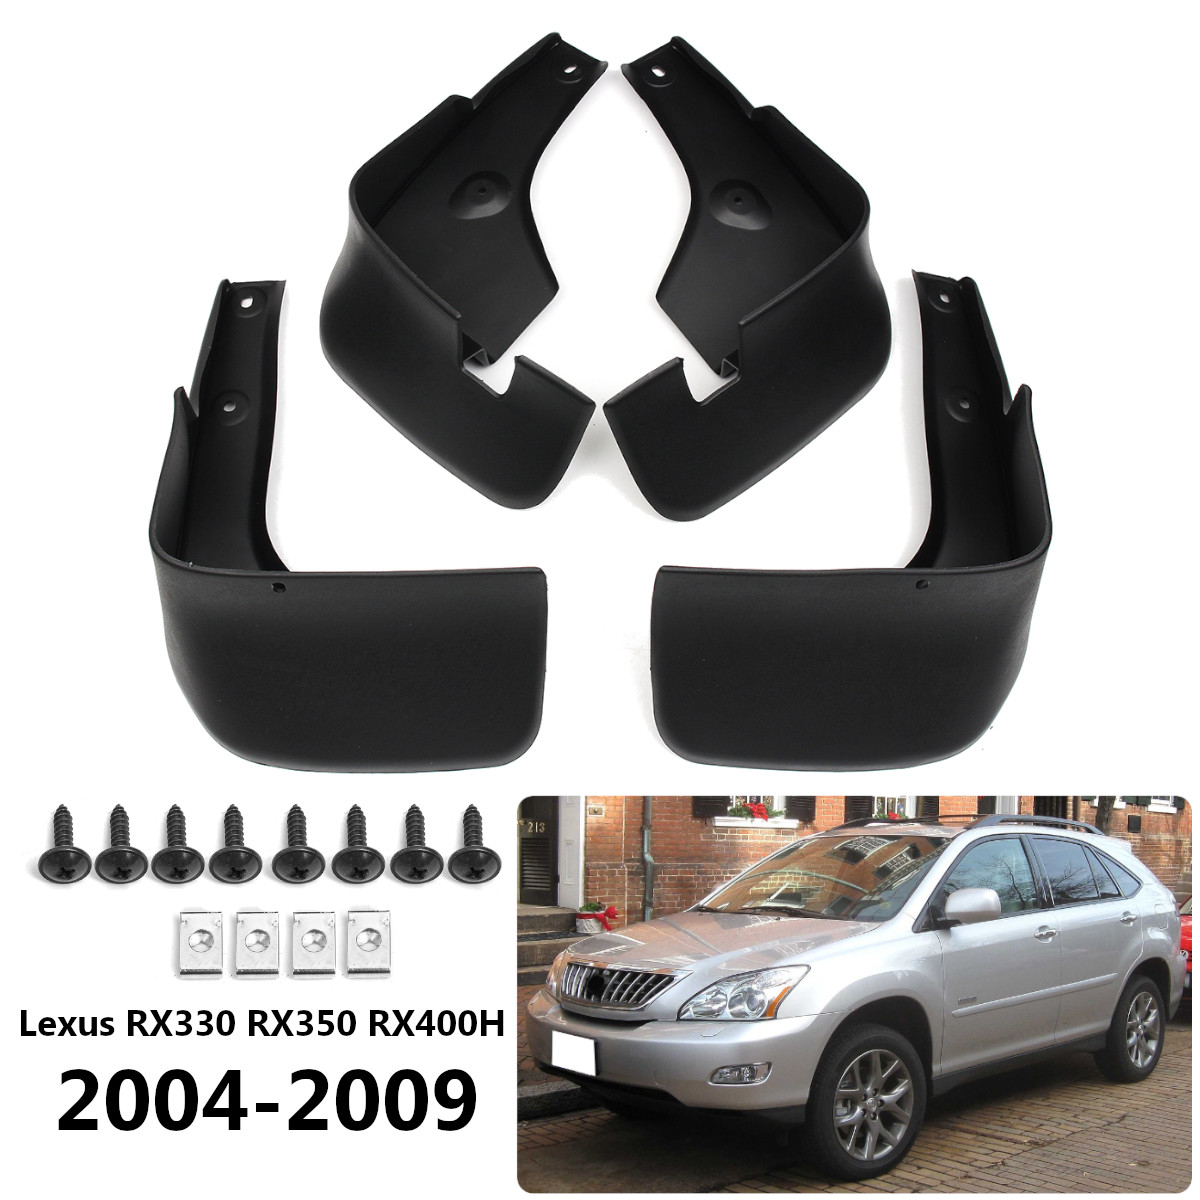 Bumper Retainer For 2010-2015 Lexus RX350 Side Retainer Rear Right